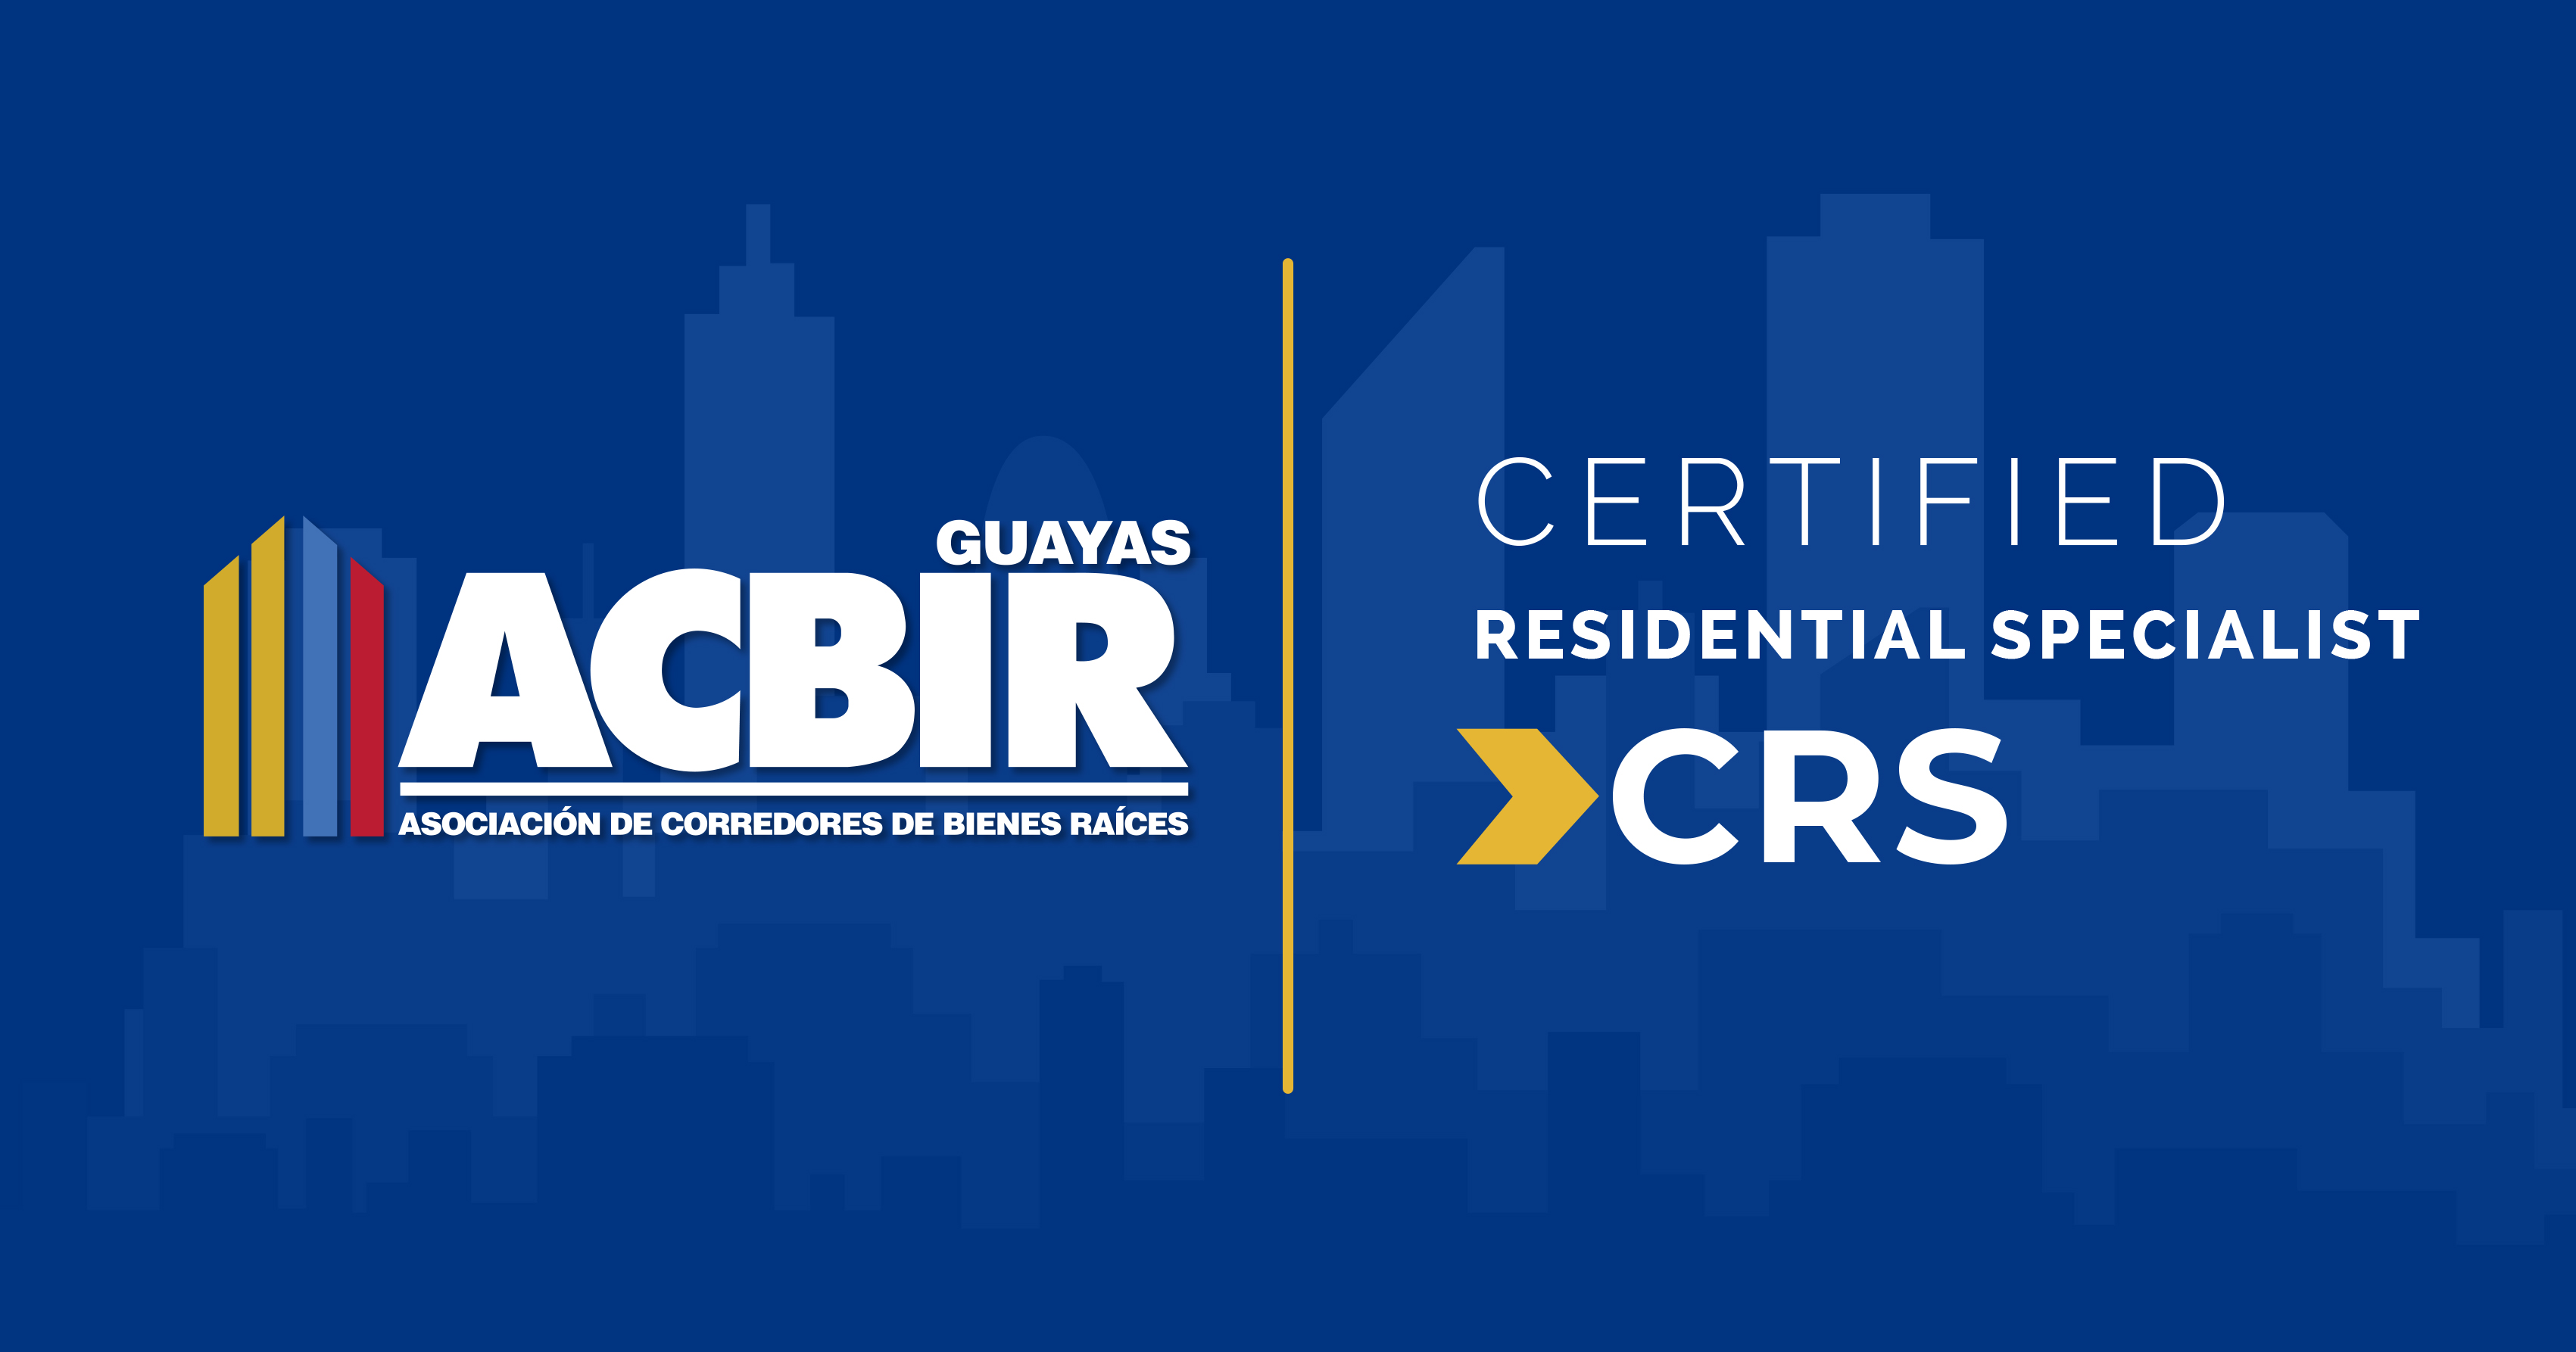 Certificación CRS (Certified Residential Specialist)